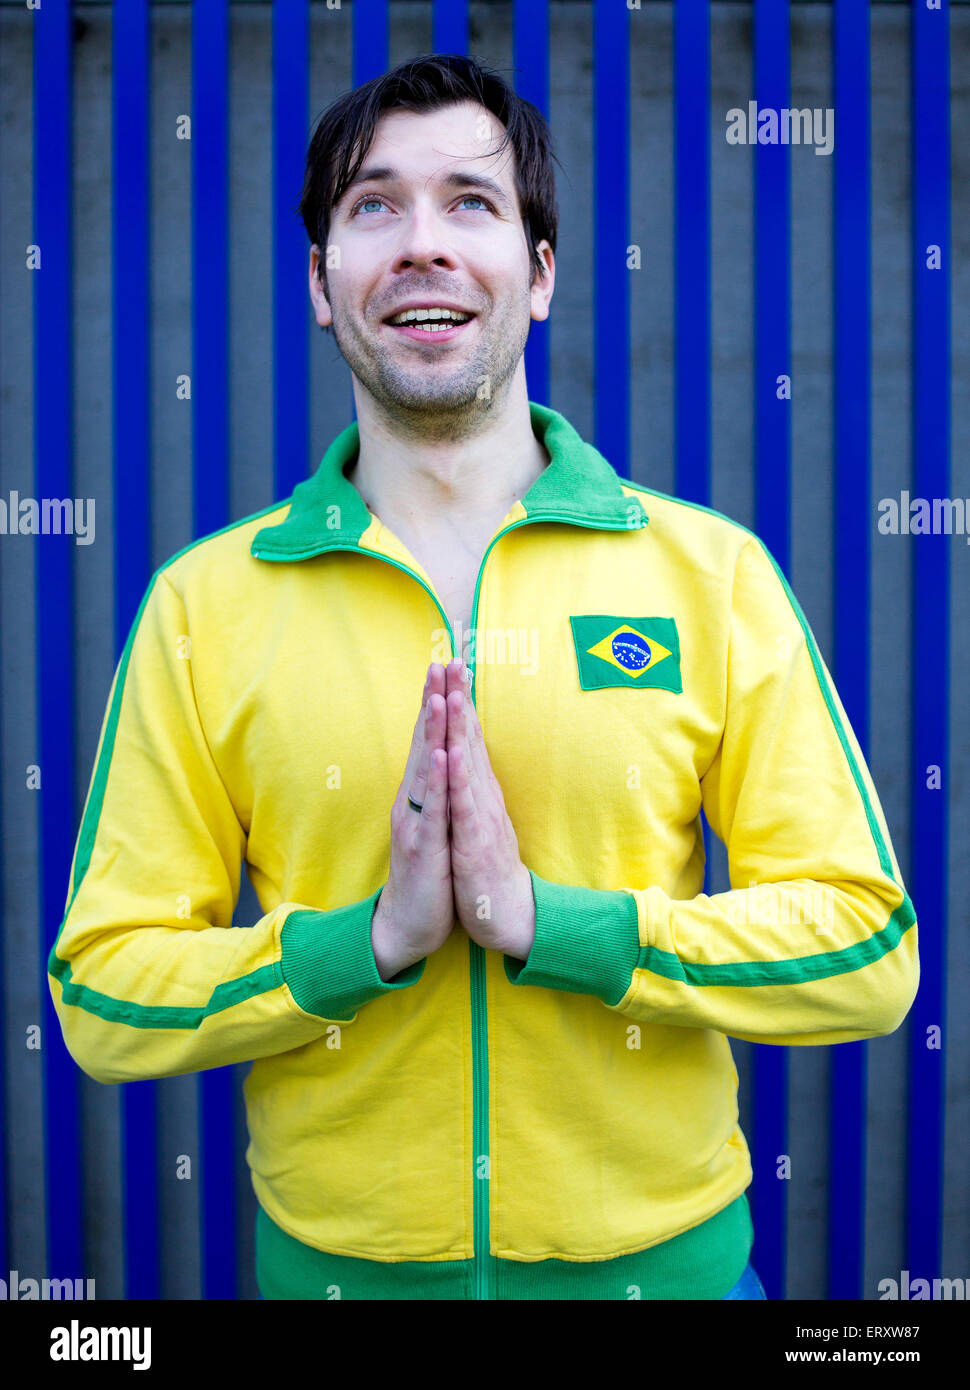 man in yellow trikot is looking up the sky and praying with a smile - Stock Image